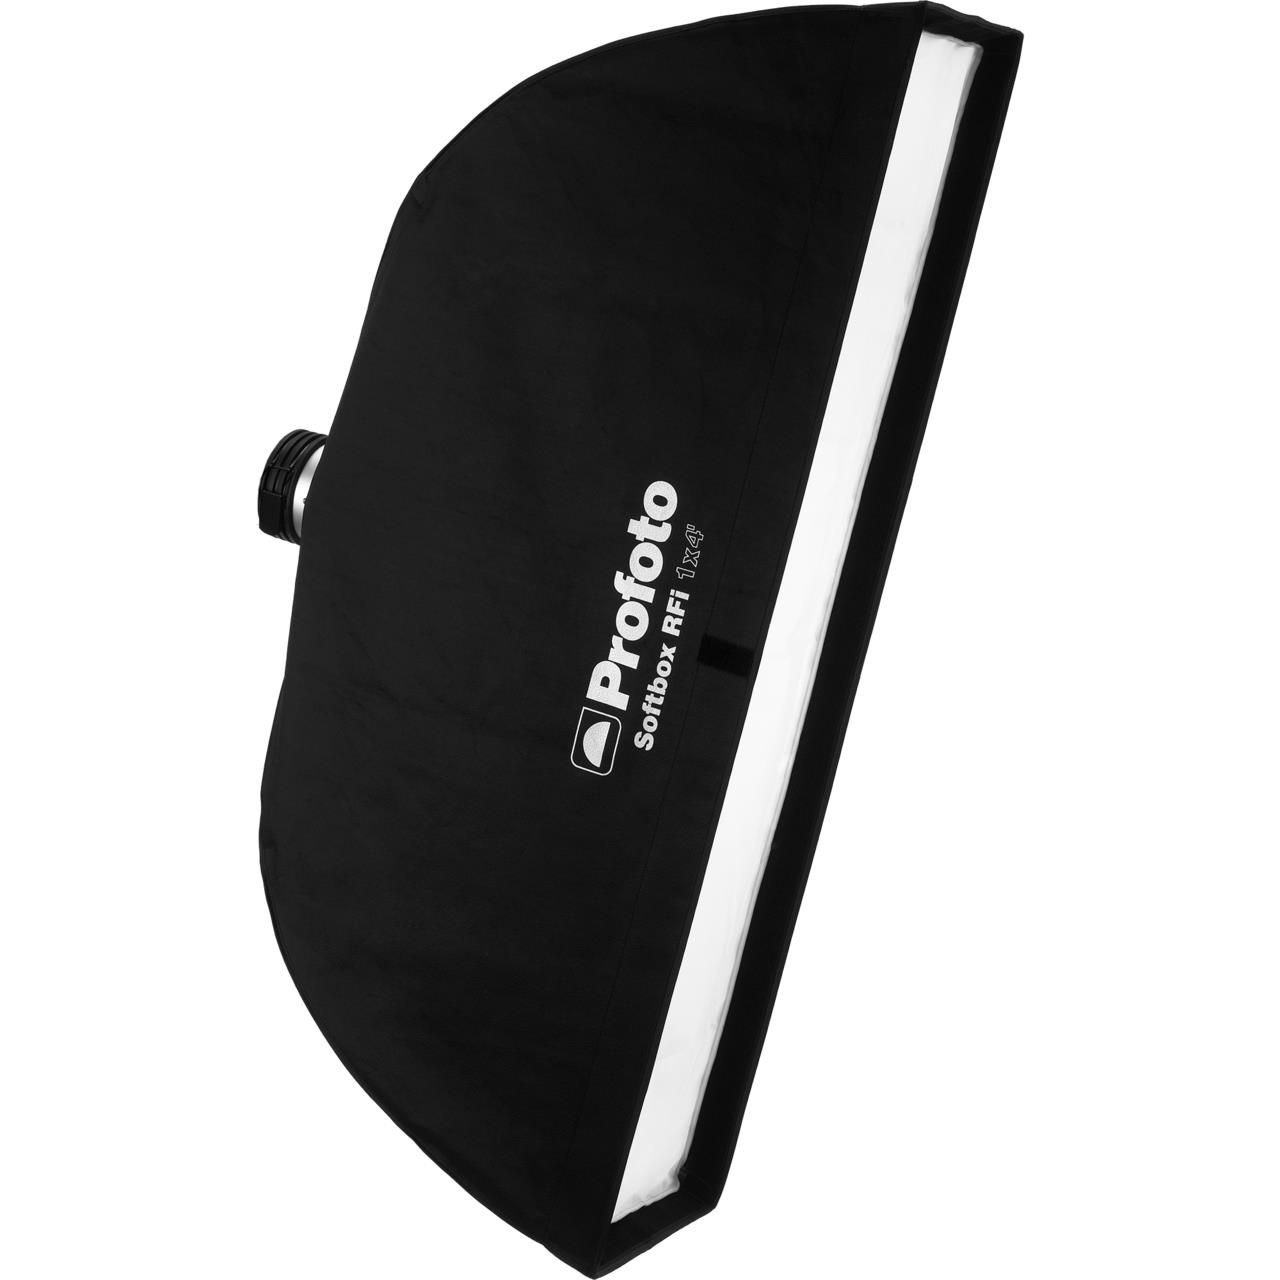 RFi Softbox Strip 30x120 см